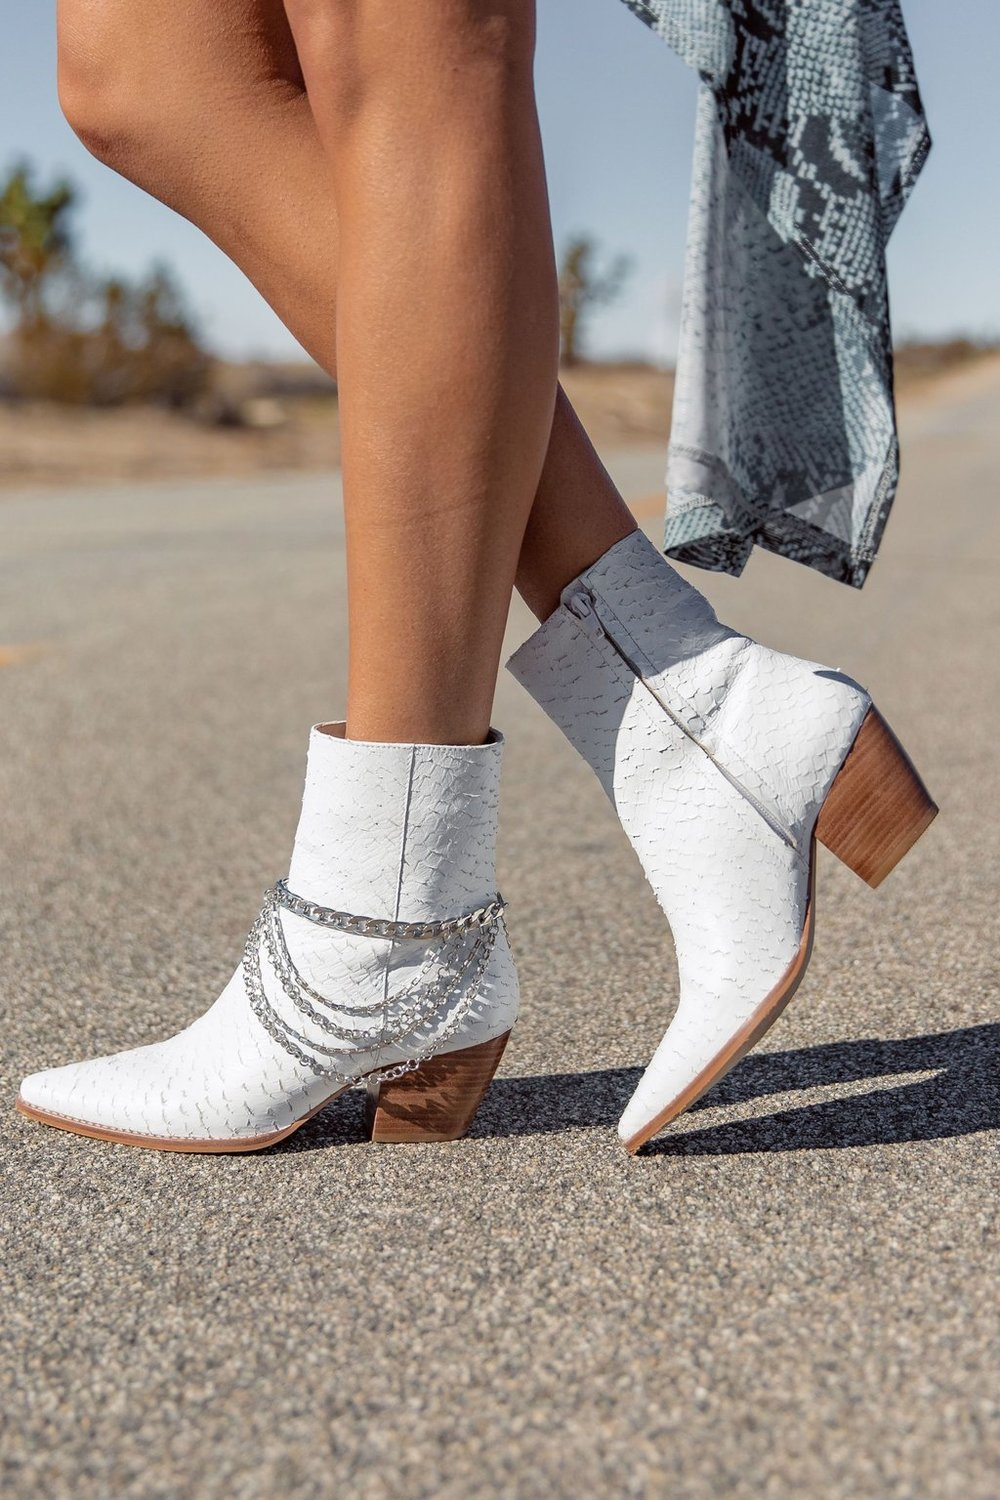 $198 White Python Matisse Caty Bootie Exclusive - Get the All About the Noise Silver Boot Chain with these booties to complete the look.